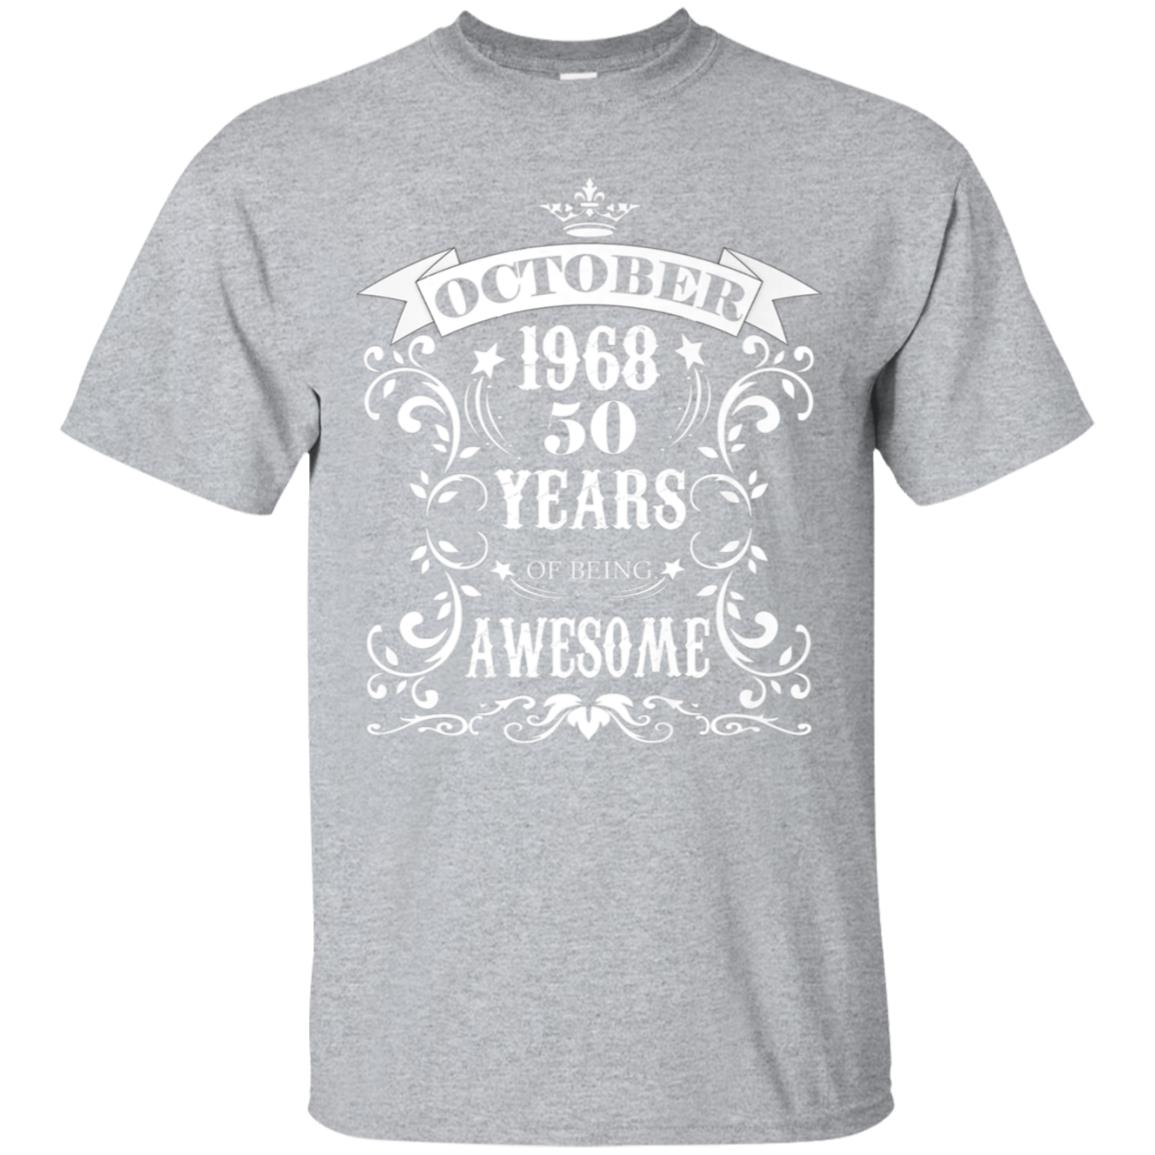 50th Birthday Gift - Awesome Born in October 1968 T-Shirt 99promocode